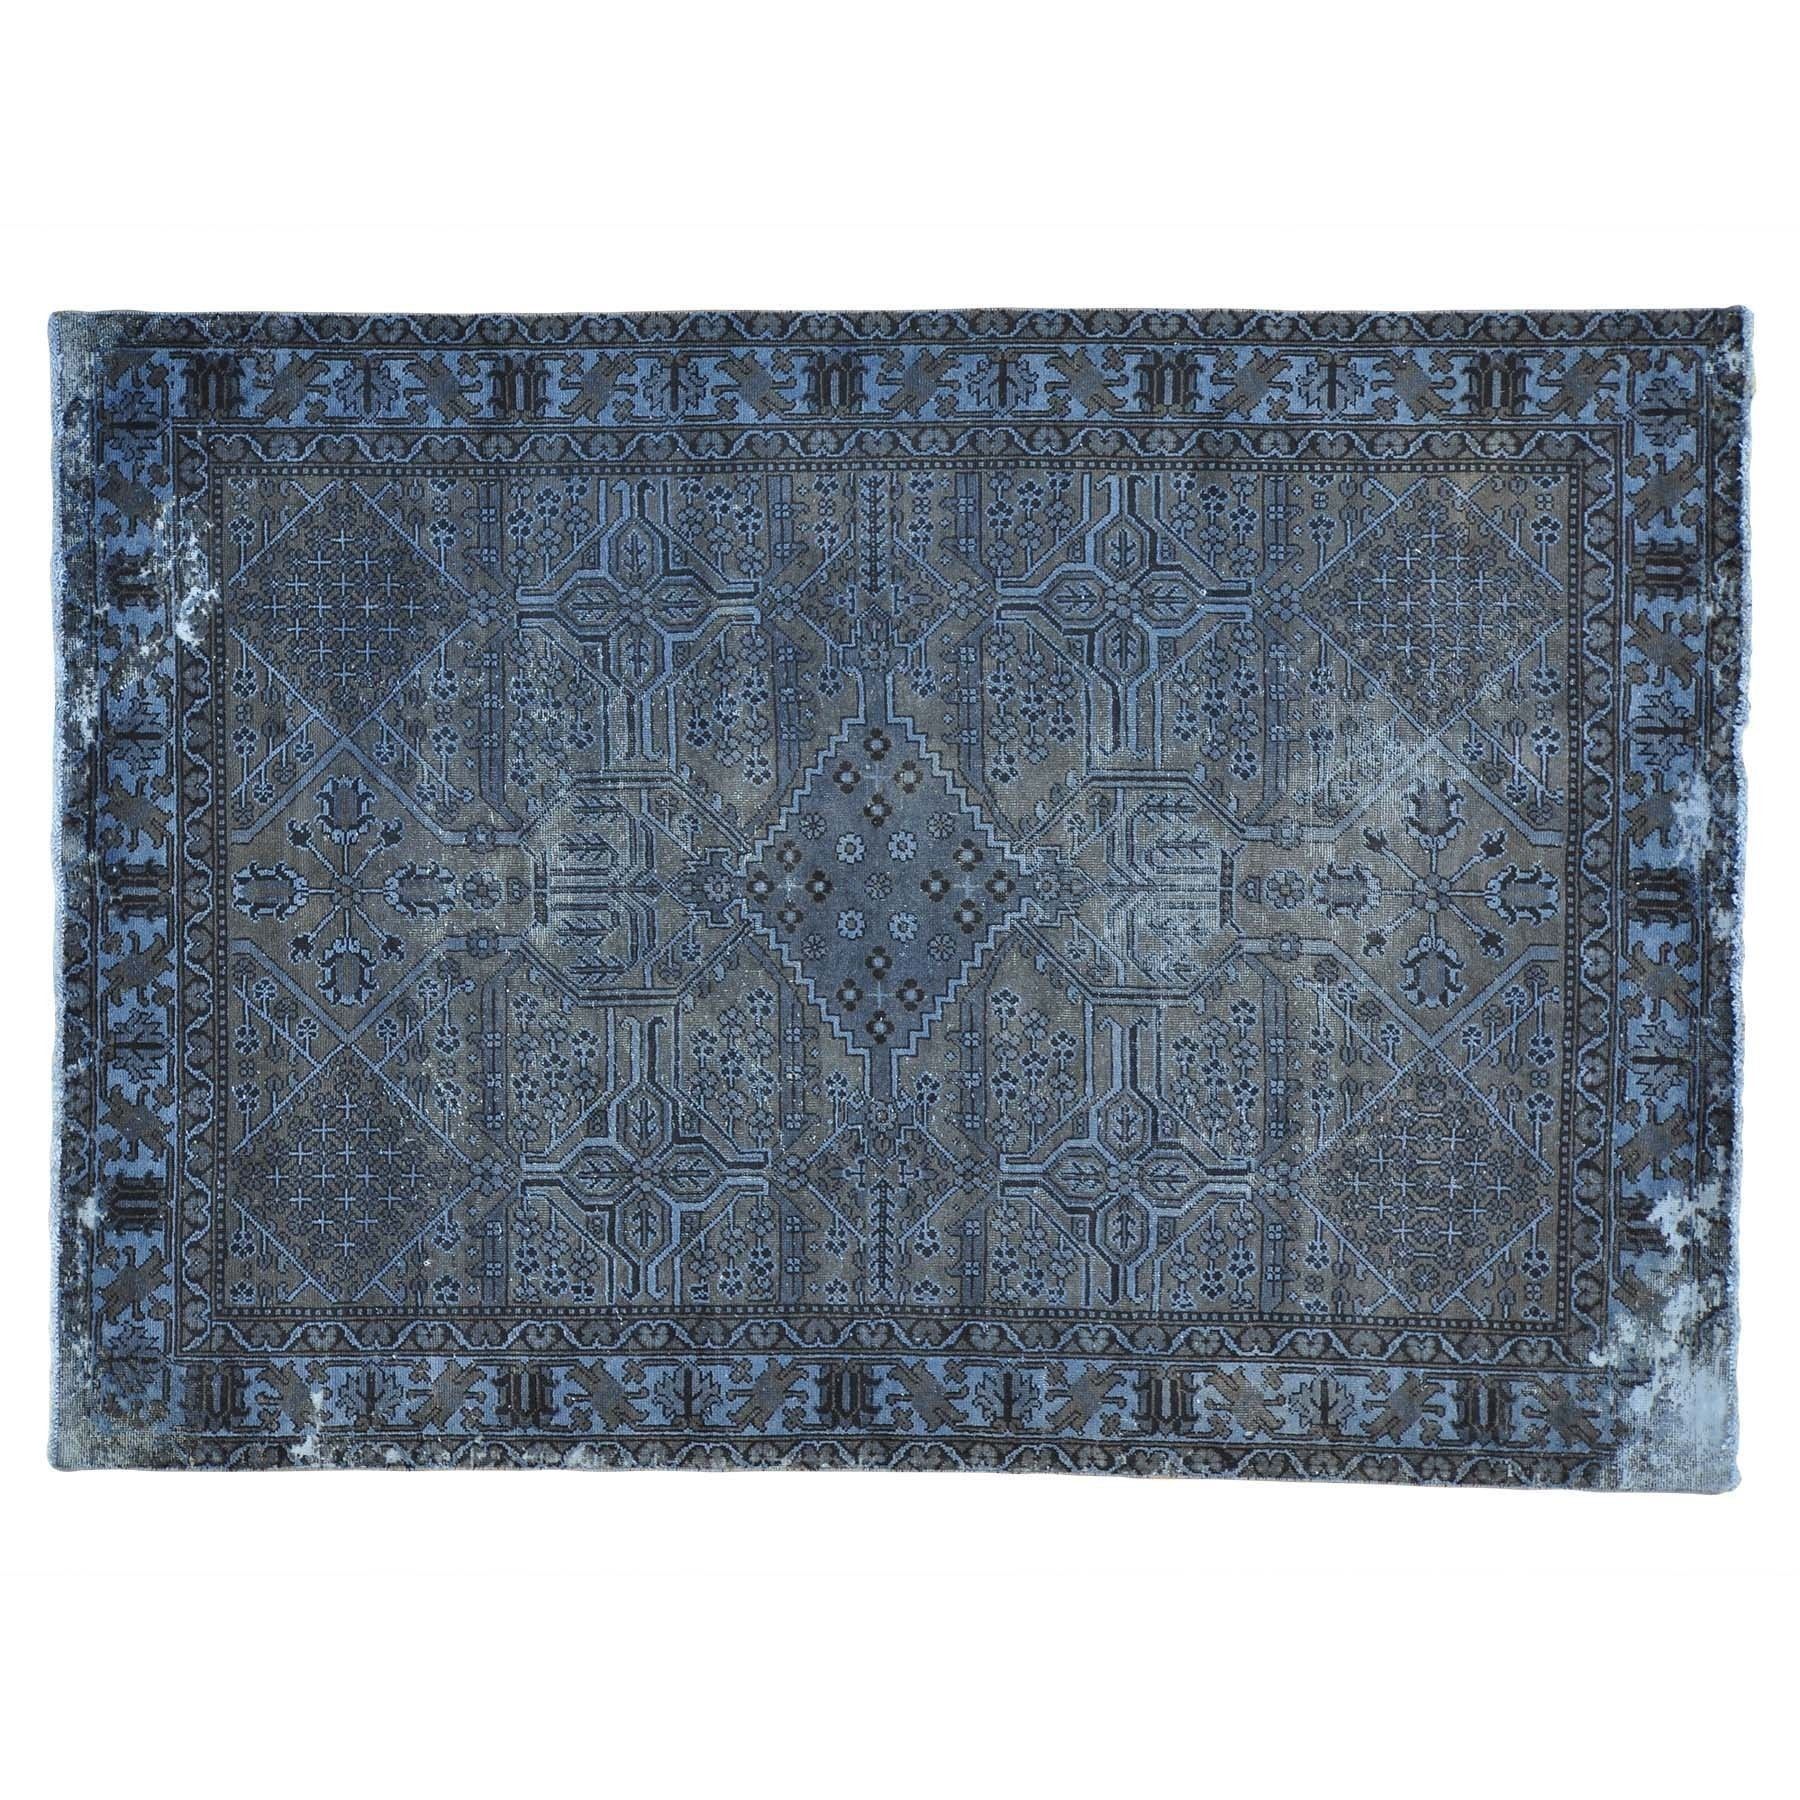 "1800getarug Refurbished Semi Antique Overdyed Persian Bakhtiari Oriental Rug (6'6 x 9'5) (Exact Size: 6'6"" x 9'5""), Grey, Size 7' x 10'"